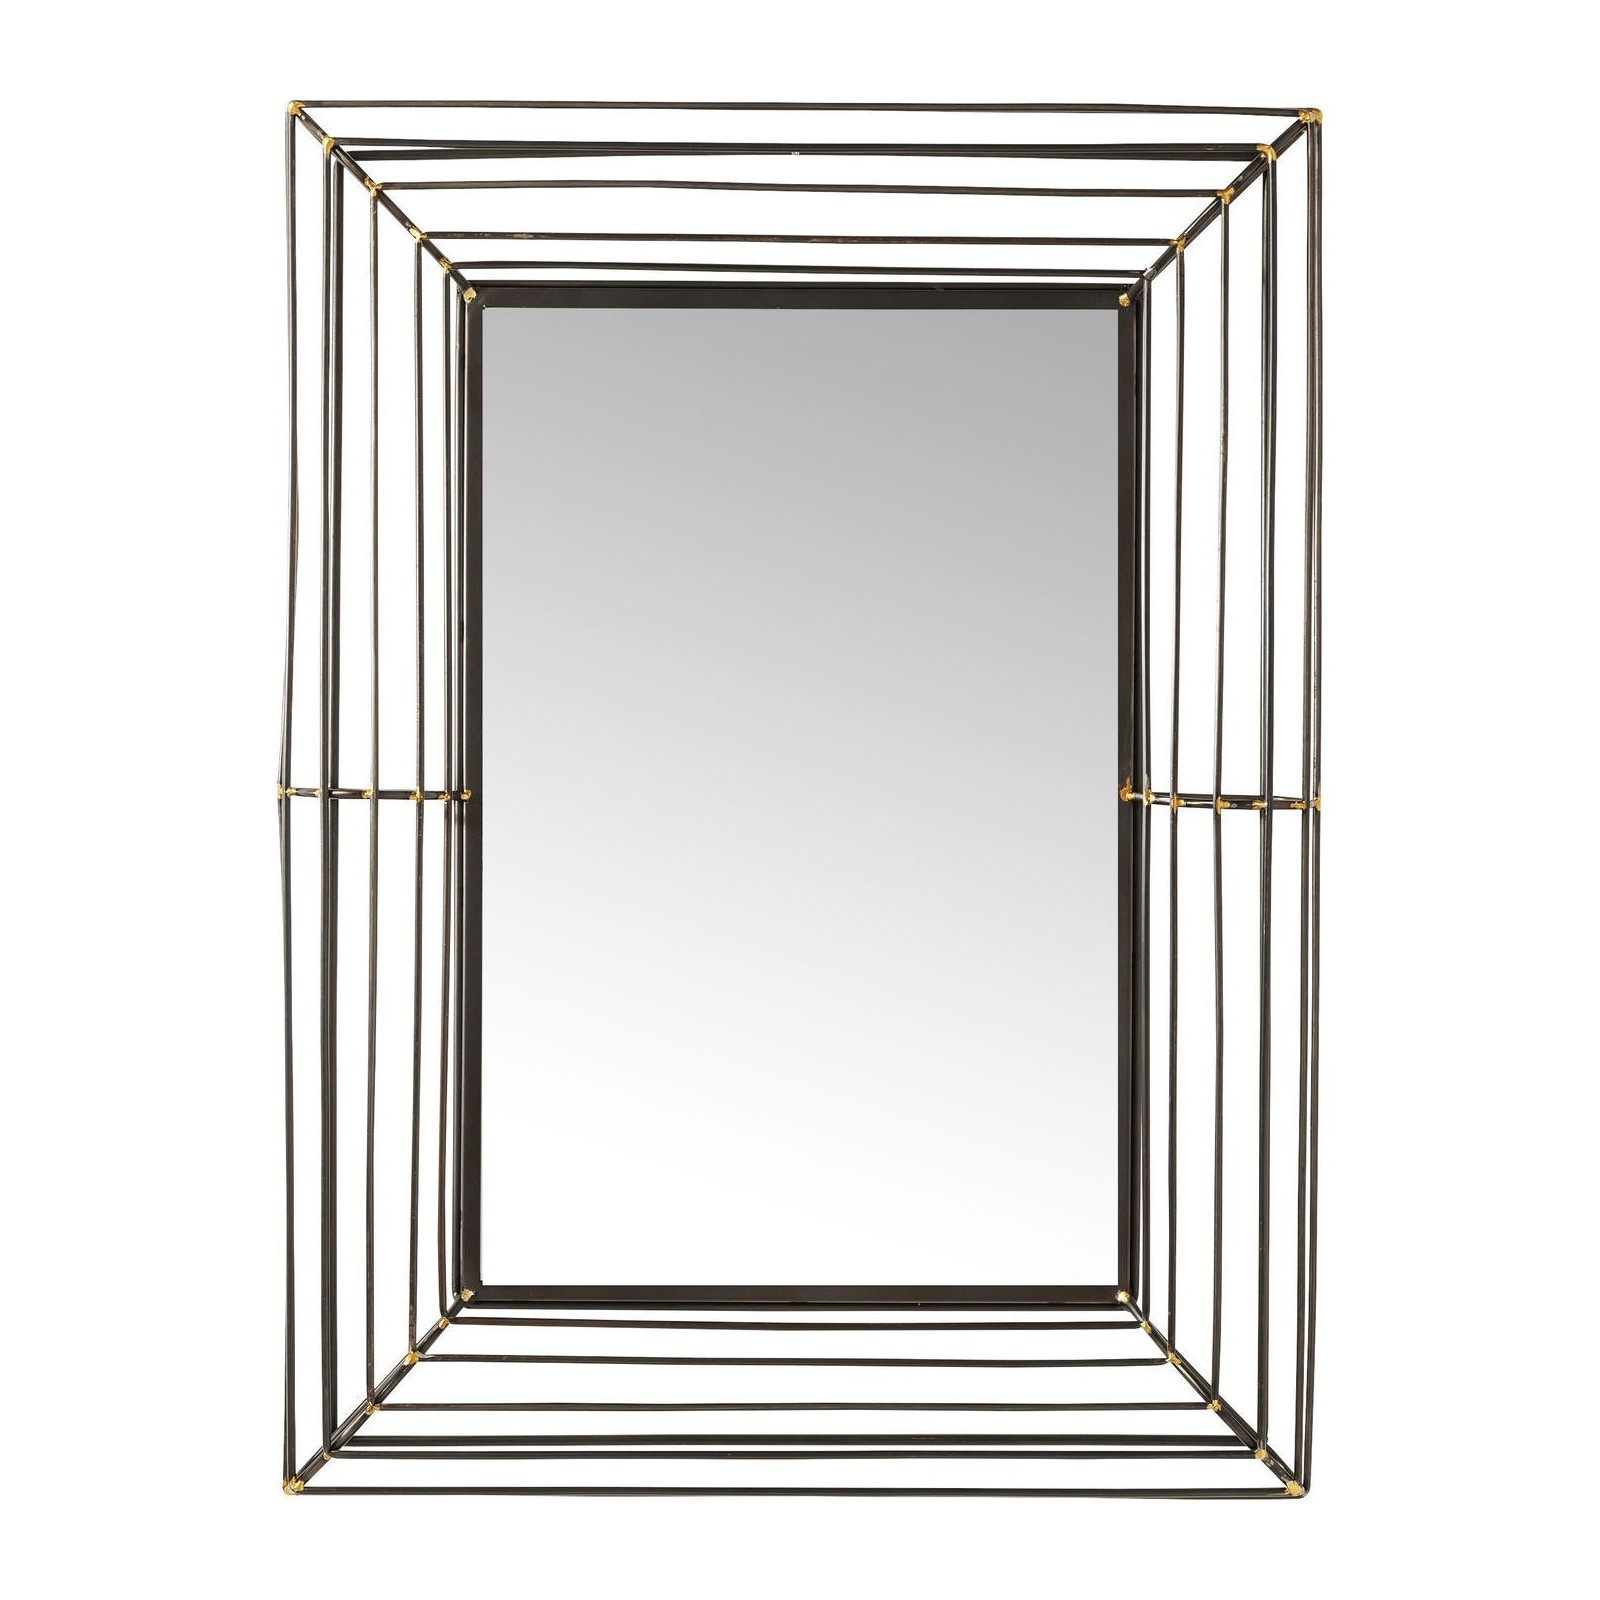 Miroir hacienda rectangulaire 95x71cm kare design for Miroir rectangulaire